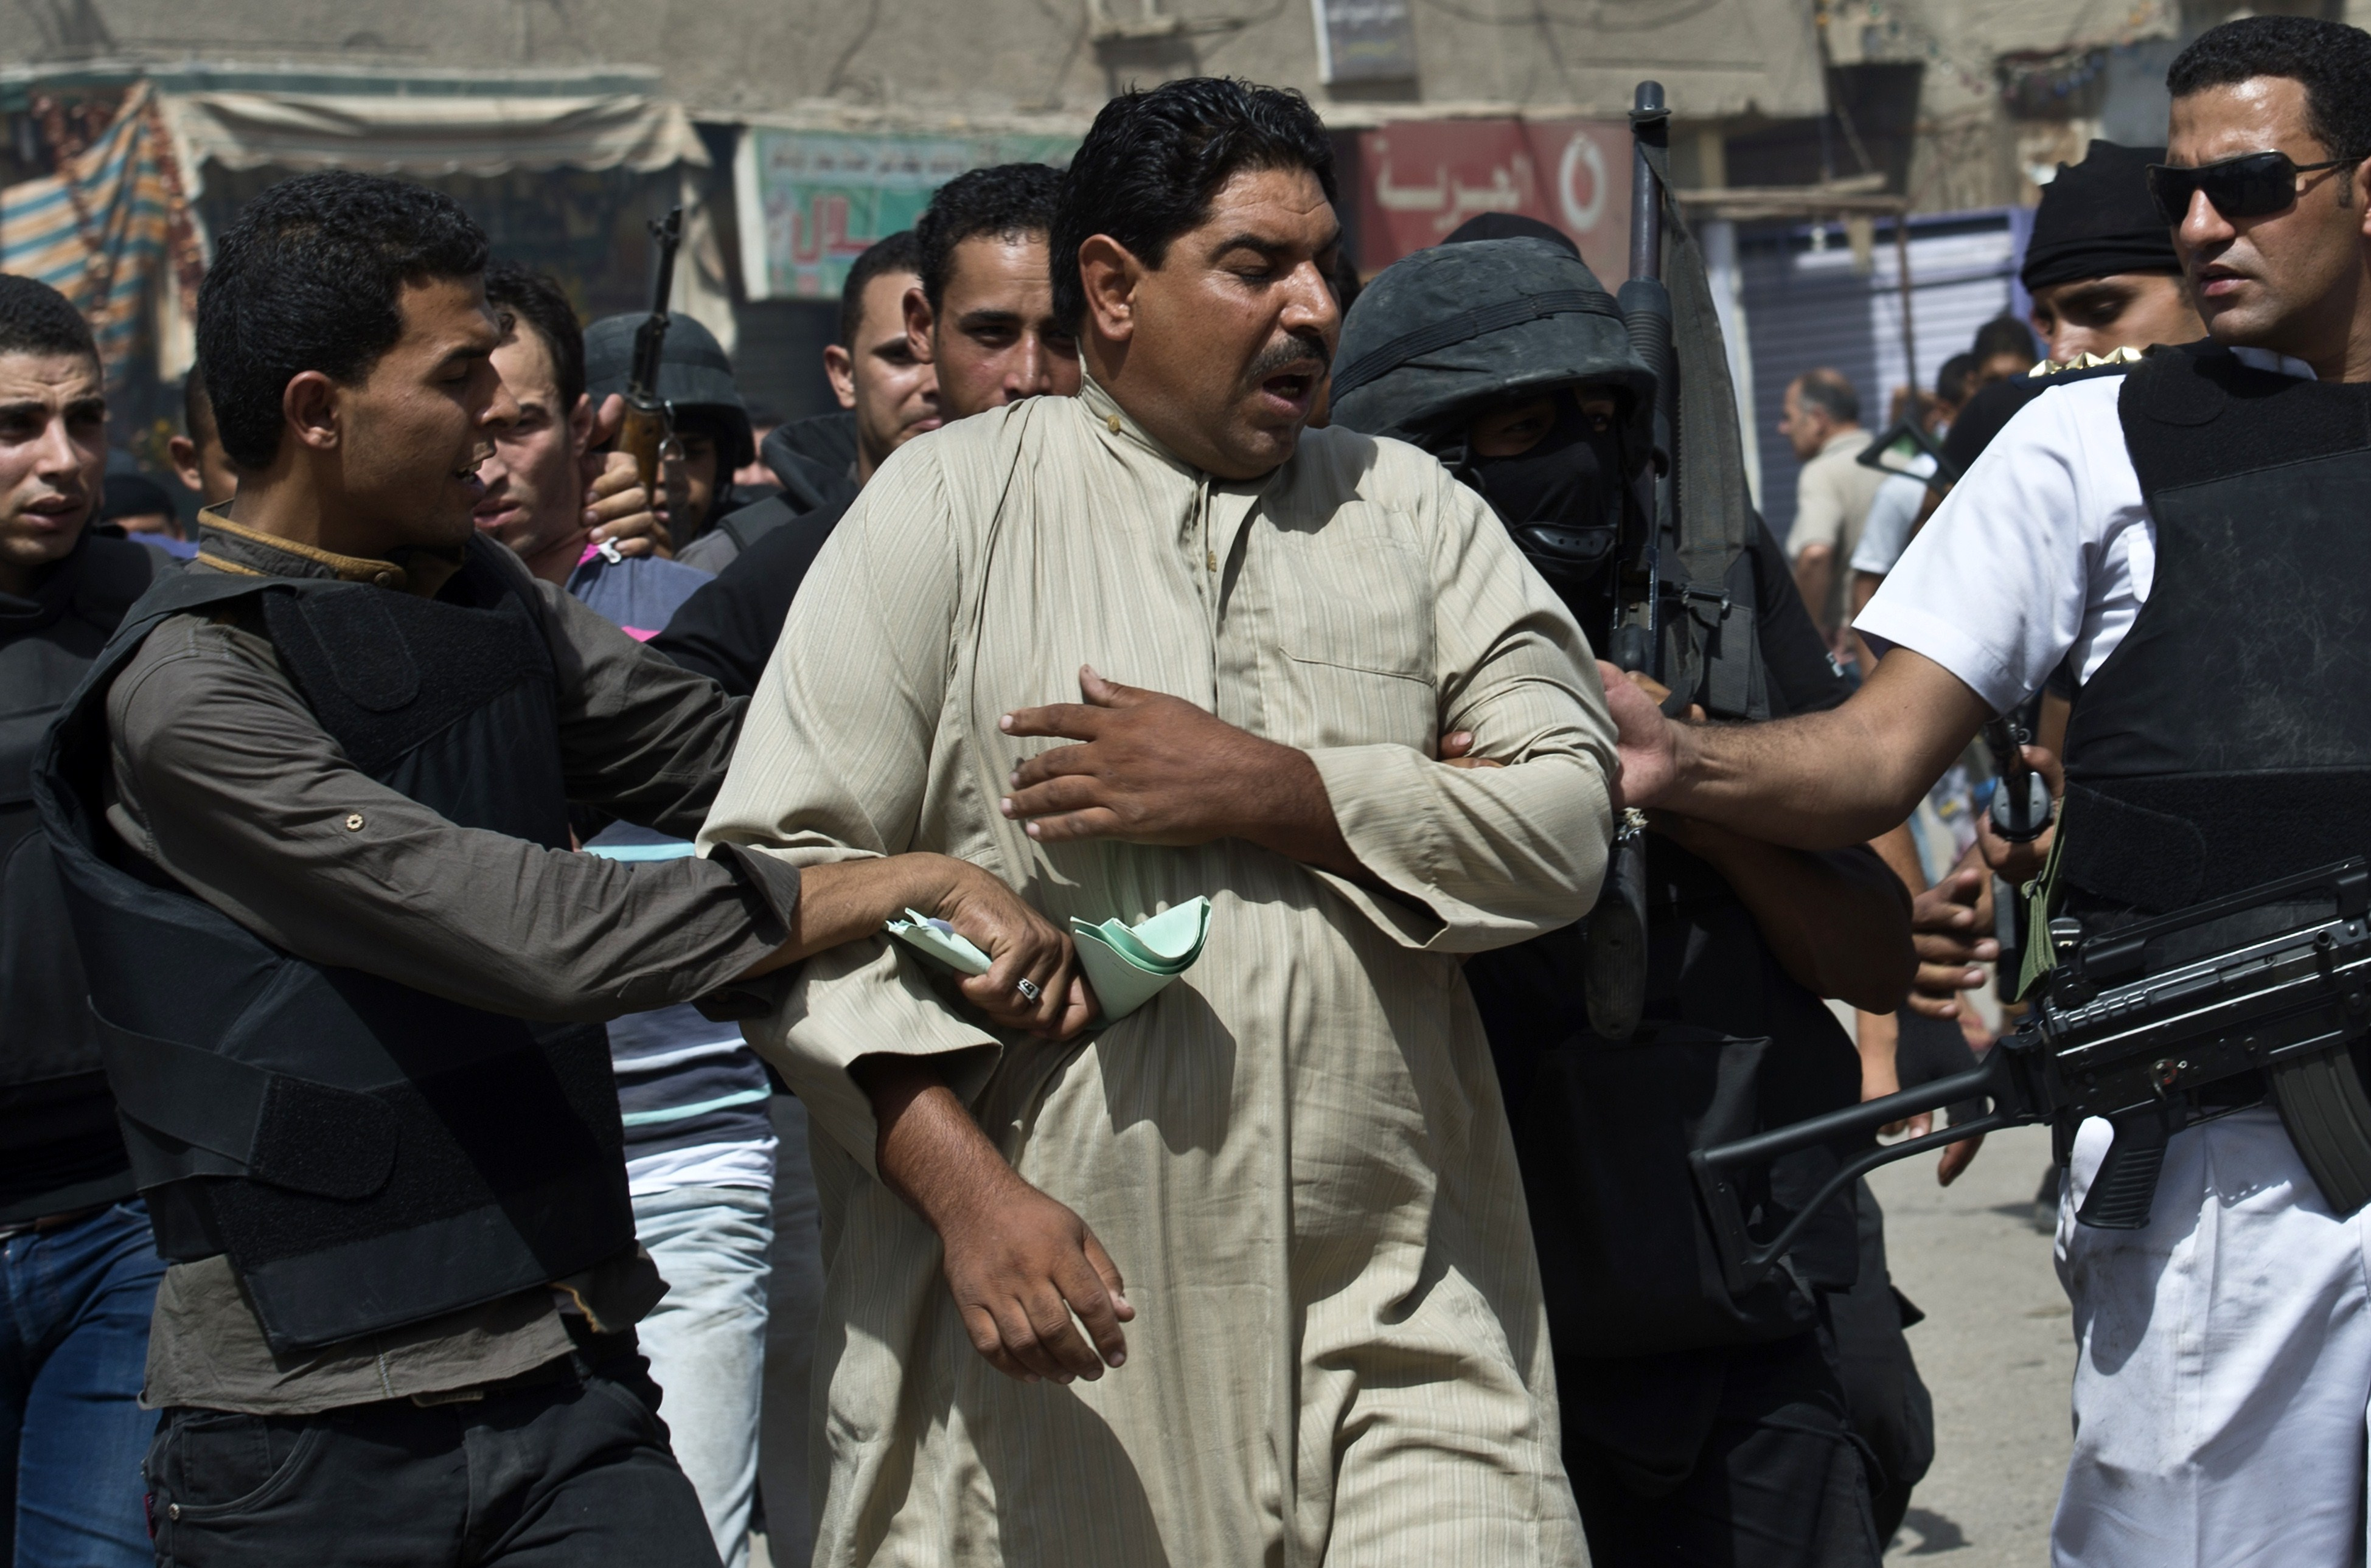 Egyptian armed policemen arrest a man during a raid in the village of Kerdassah on the outskirts of Cairo (AFP Photo)